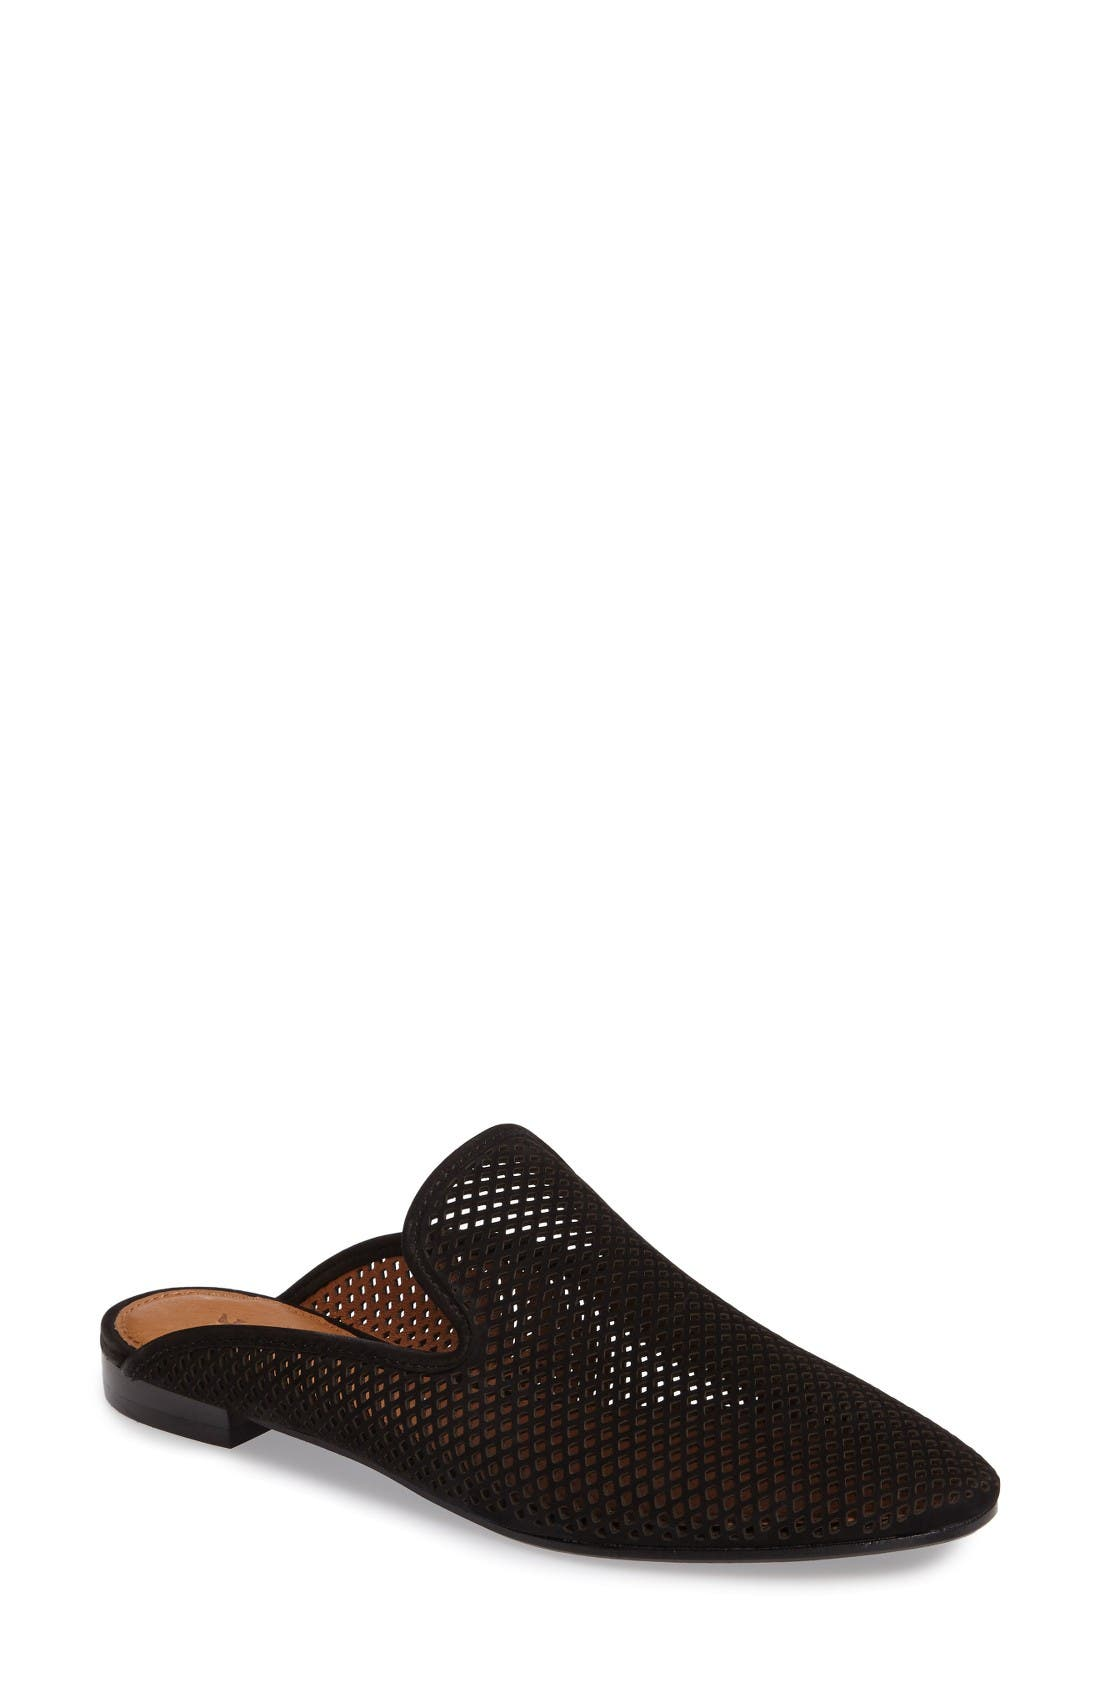 Gwen Perforated Mule,                             Main thumbnail 1, color,                             Black Nubuck Leather